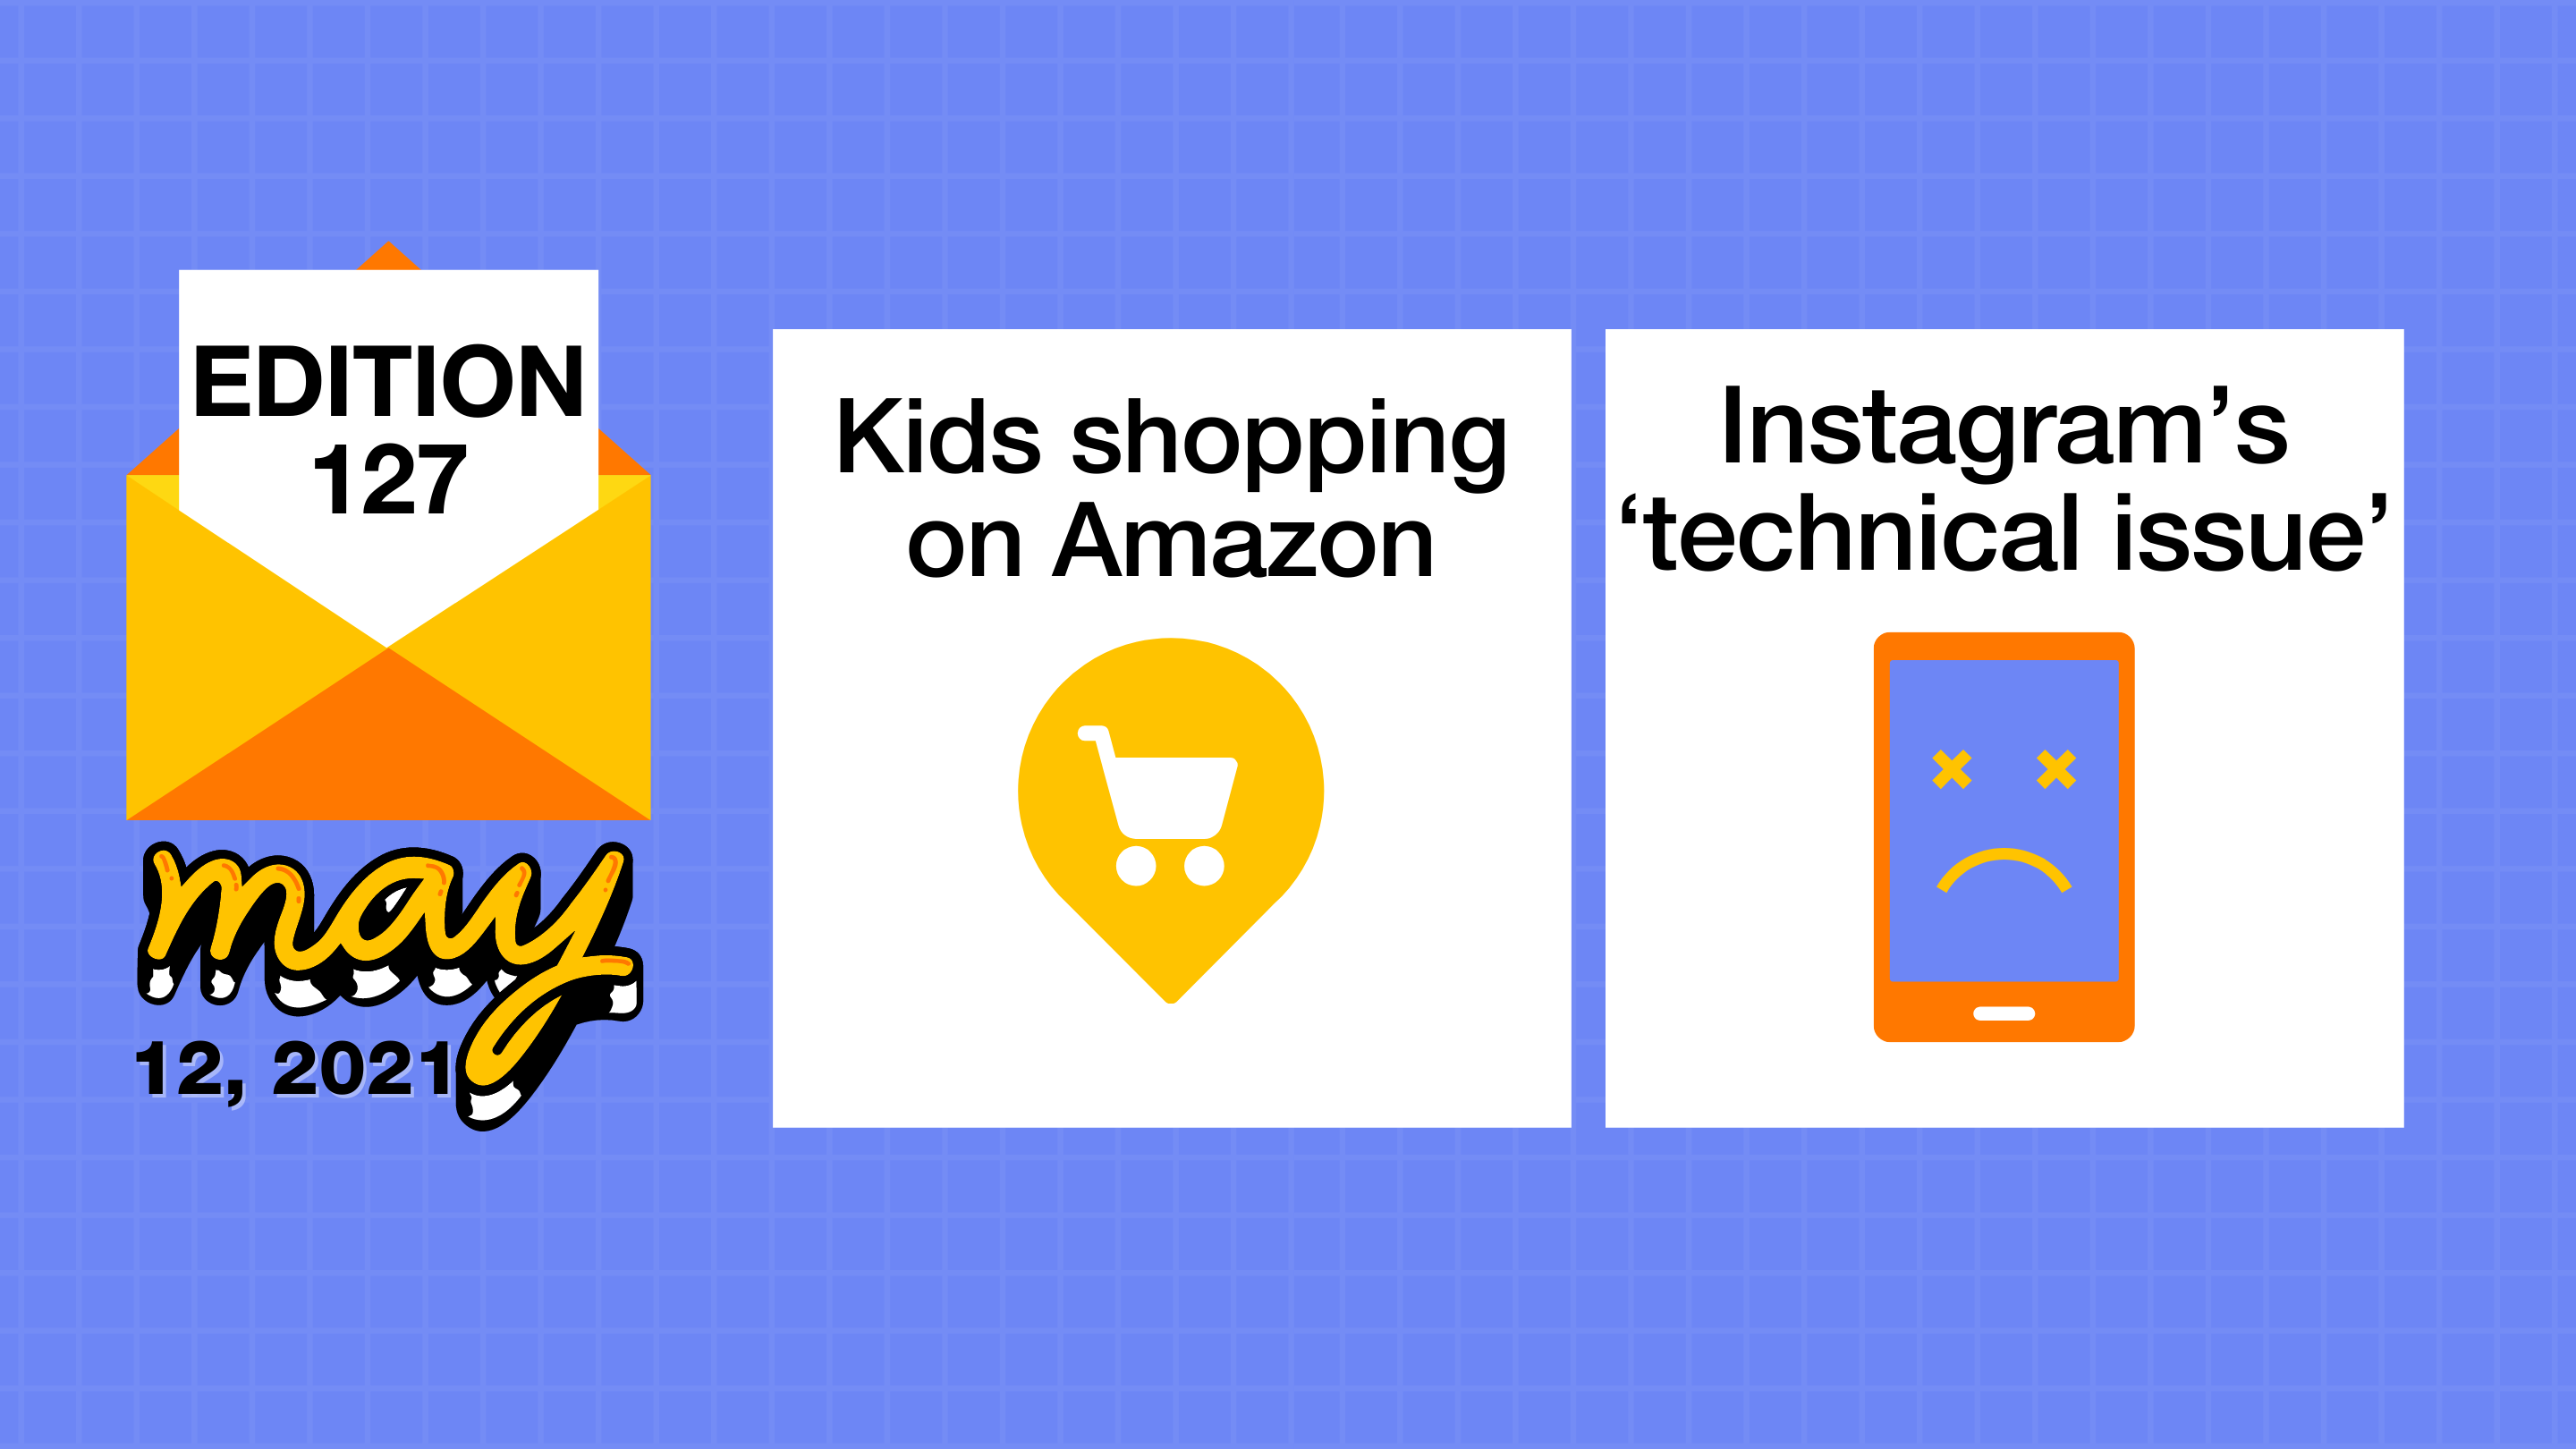 Kids shopping on Amazon and Instagram's 'technical issue'